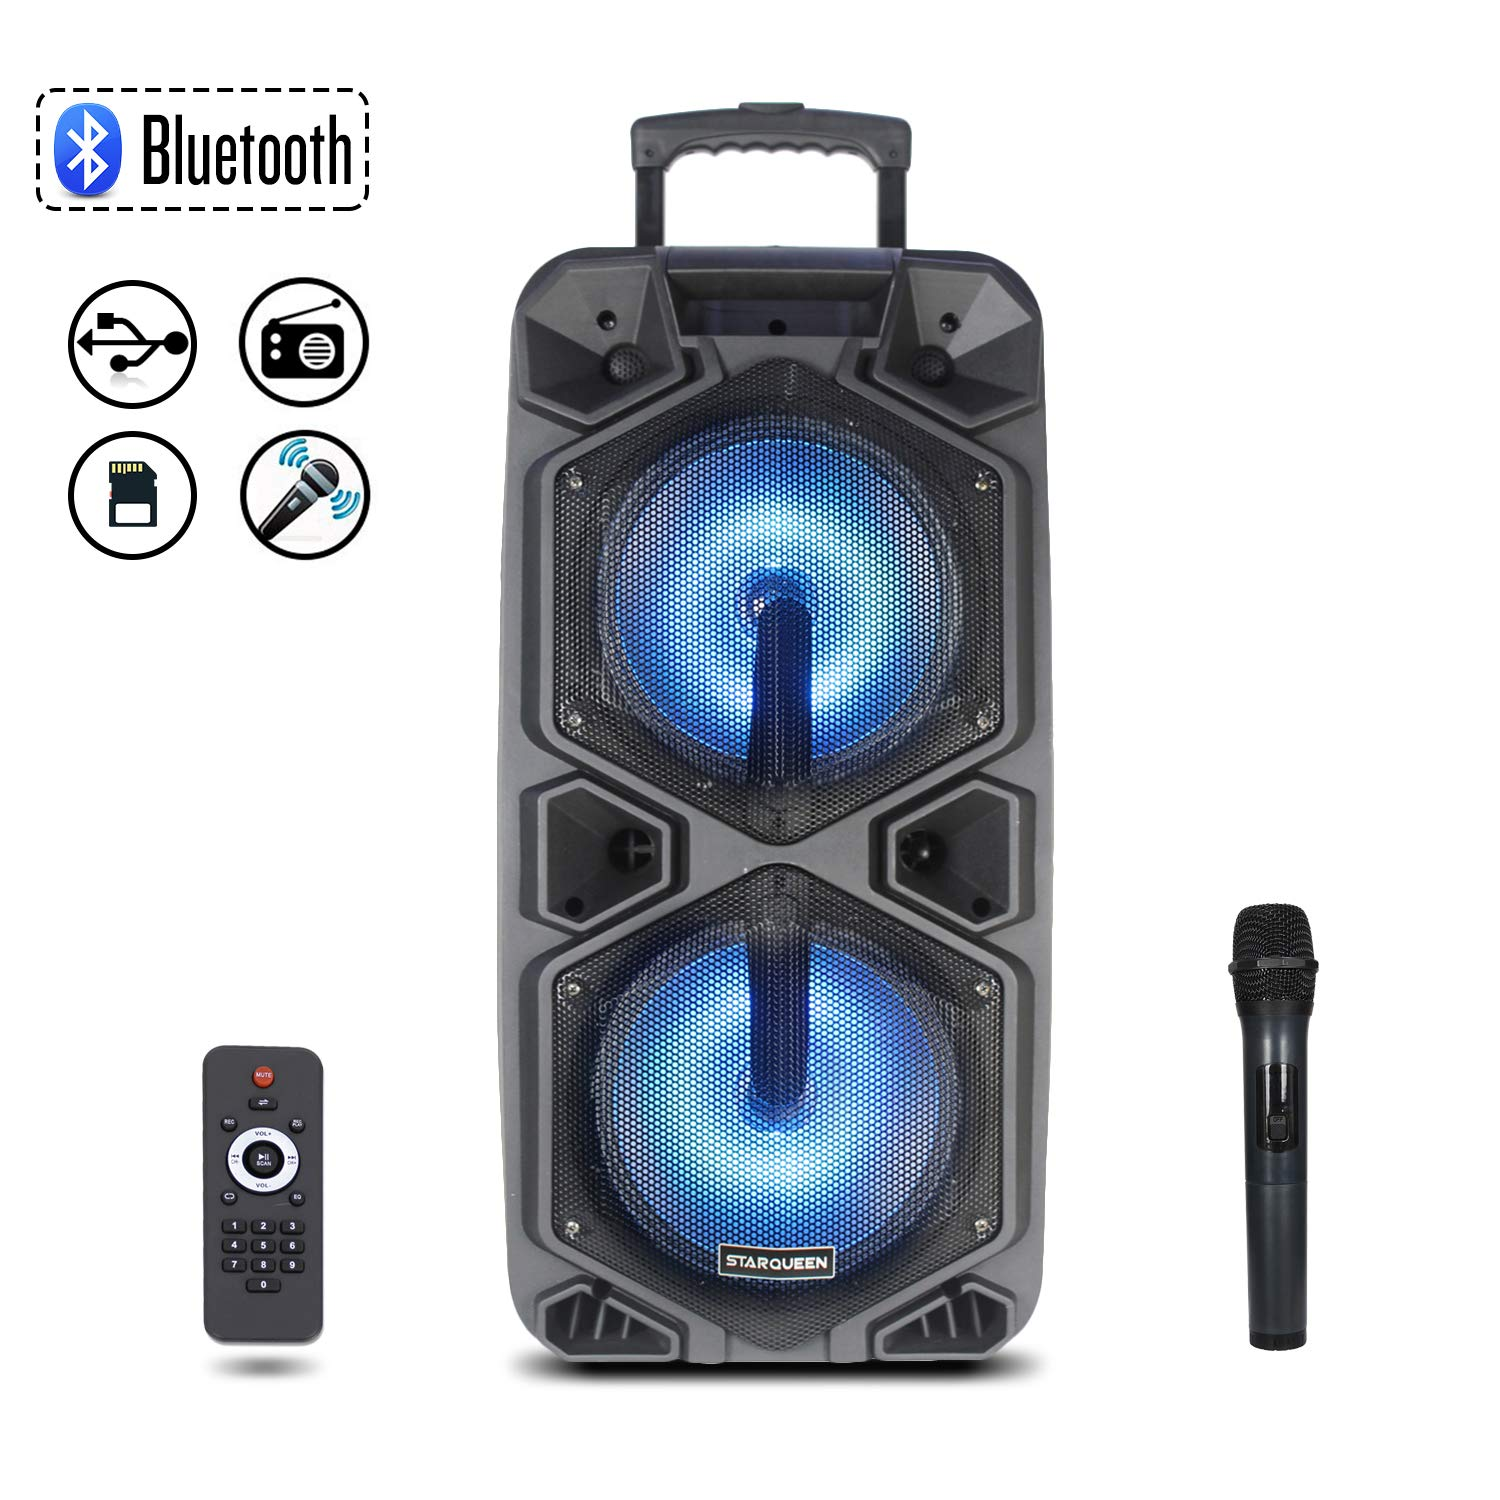 Starqueen Portable Bluetooth PA Speaker Dual 10'' Woofers with Wireless UHF Microphones, Rechargeable Battery Powered Karaoke Loudspeaker Active DJ Party Speaker with LED Light, FM/MP3/USB/TF Card/AUX